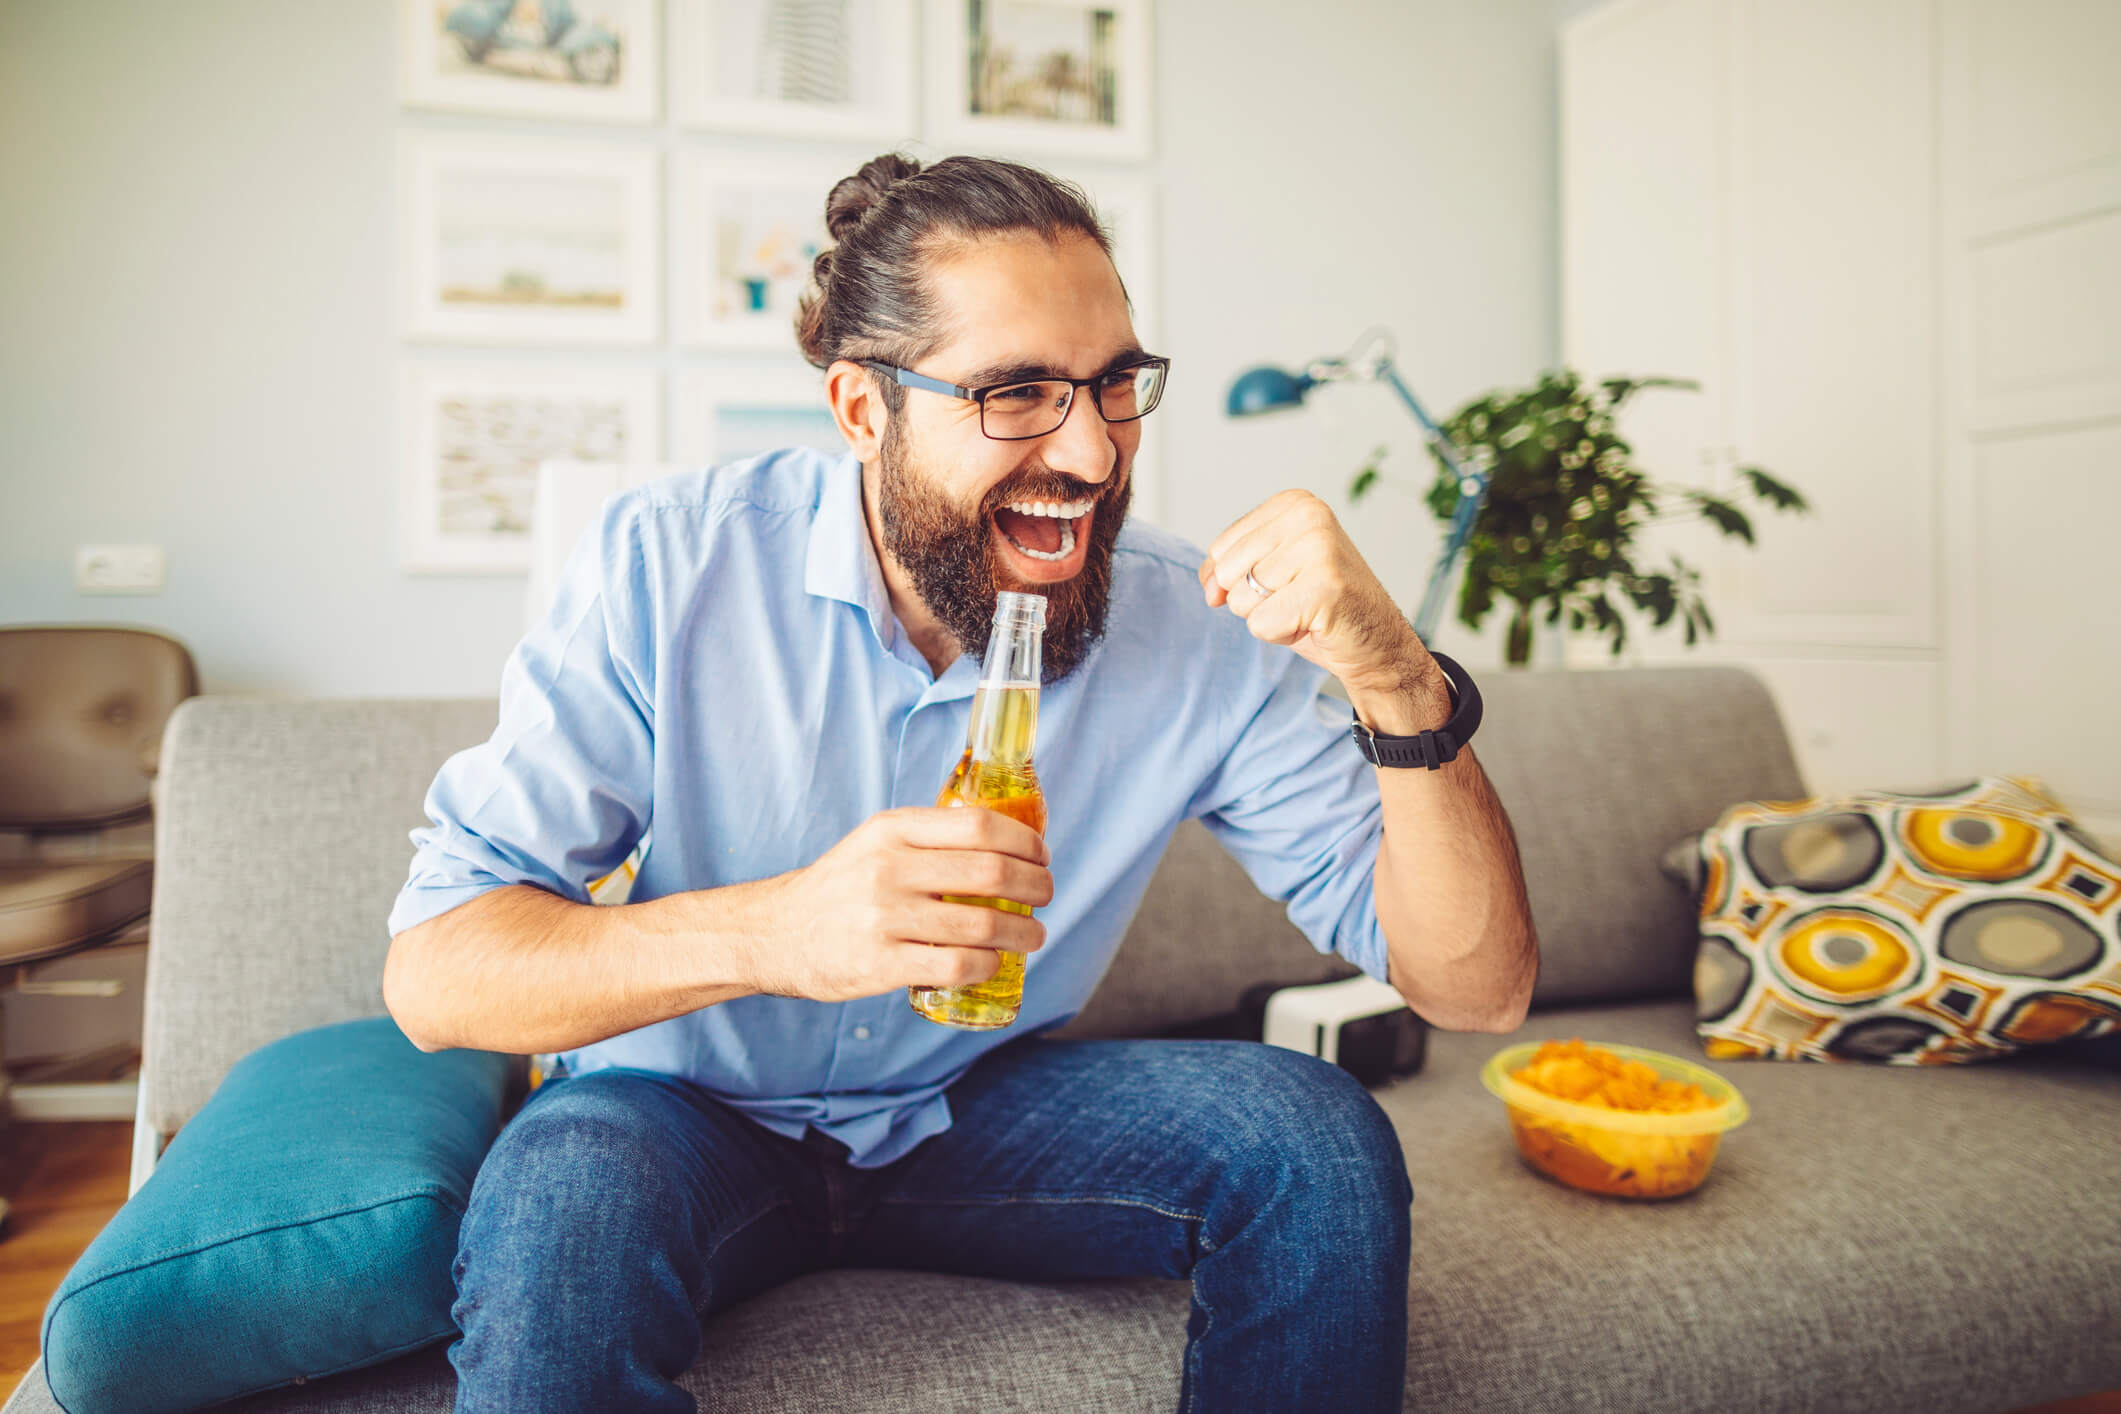 Man cheering on living room couch drinking beer and snacking on chips while watching The Draft